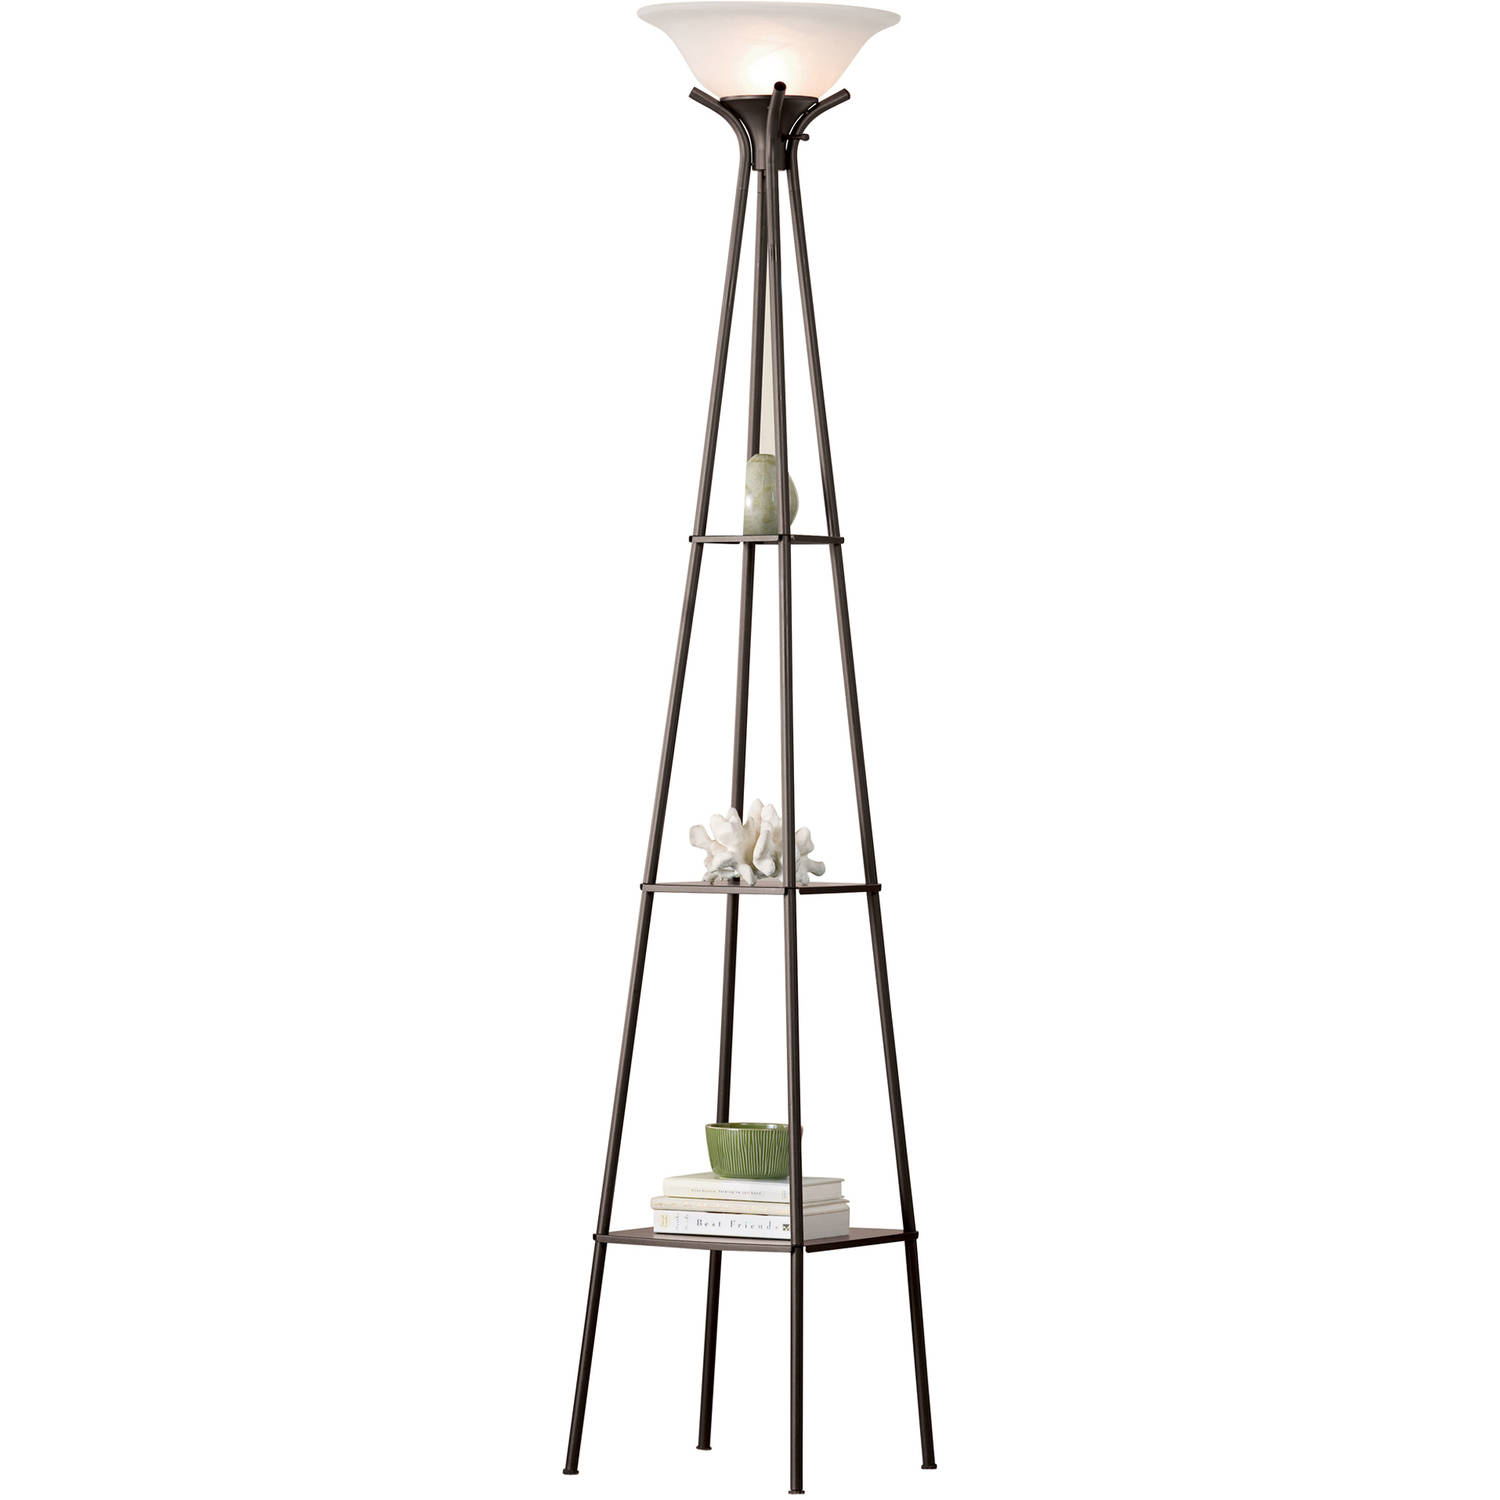 """Mainstays 69"""" Etagere Floor Lamp, Charcoal Finish, LED Bulb Included"""